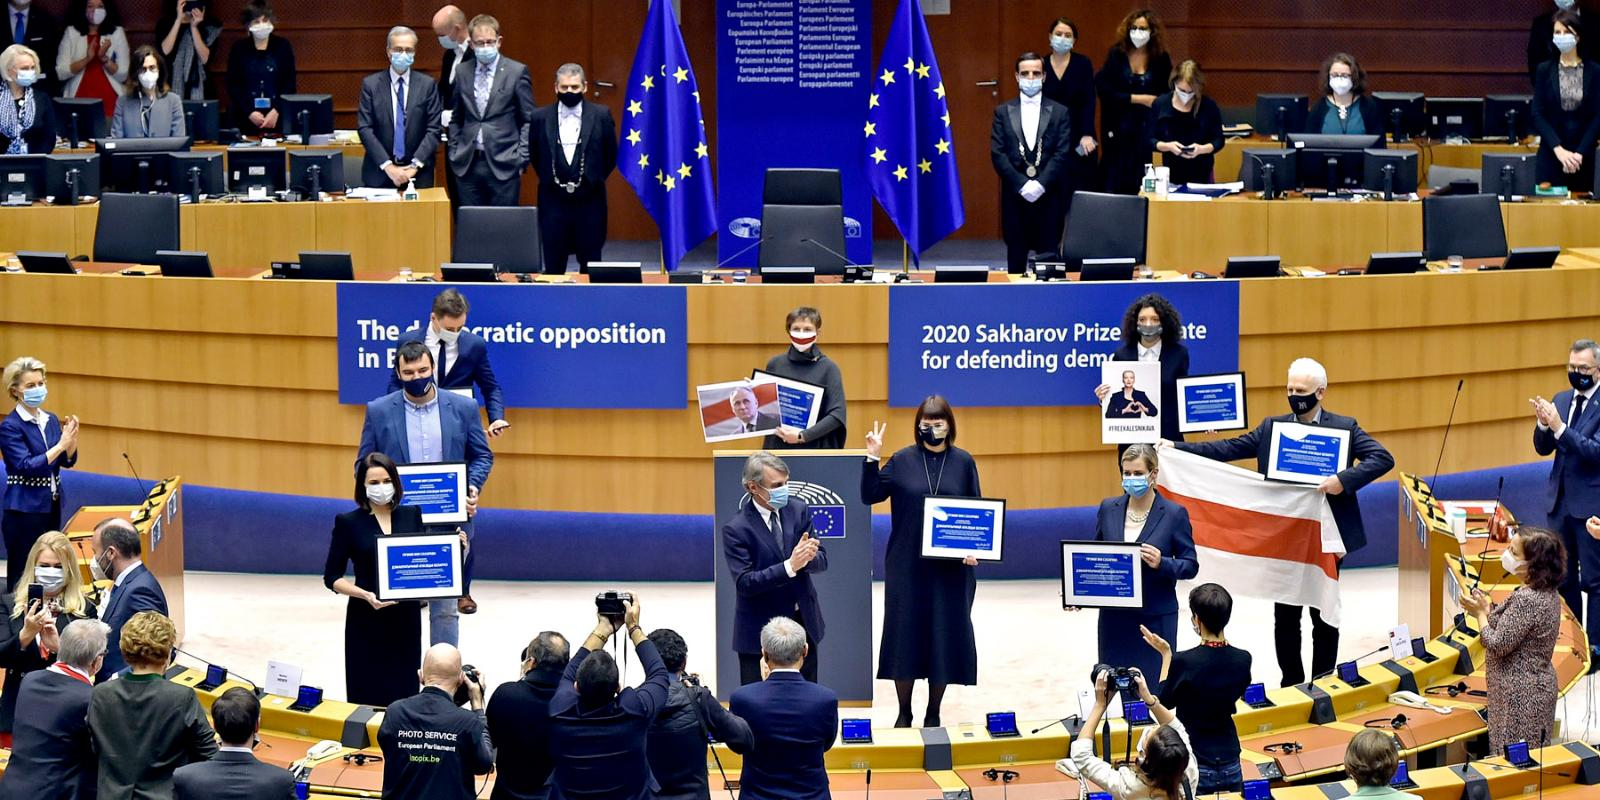 the 2020 Sakharov Prize for Freedom of Thought is awarded to the democratic opposition in Belarus, represented by several laureates including opposition leader Sviatlana Tsikhanouskaya